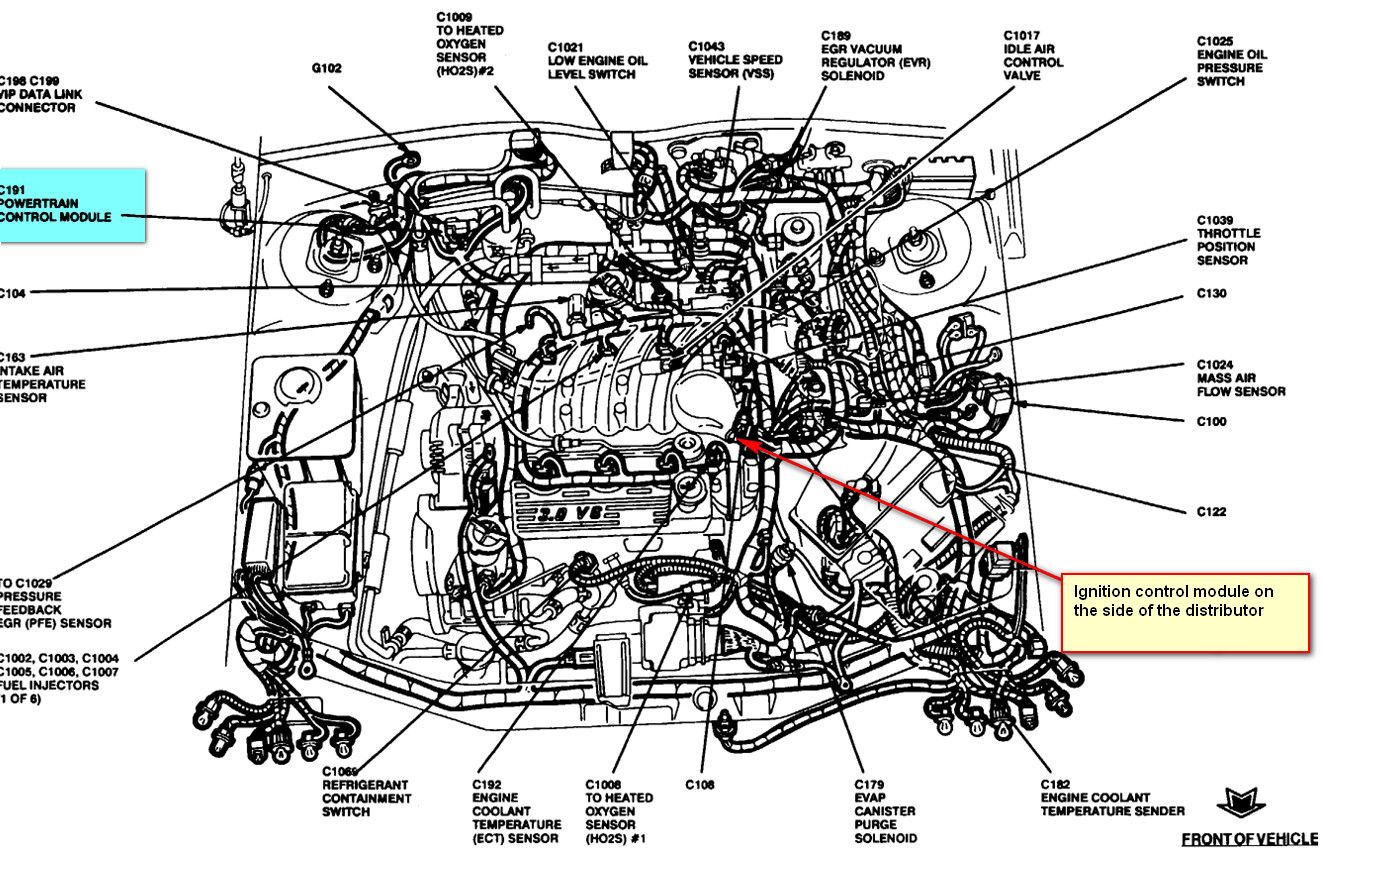 hight resolution of ford powertrain control module diagram wiring diagram host ford powertrain control module diagram